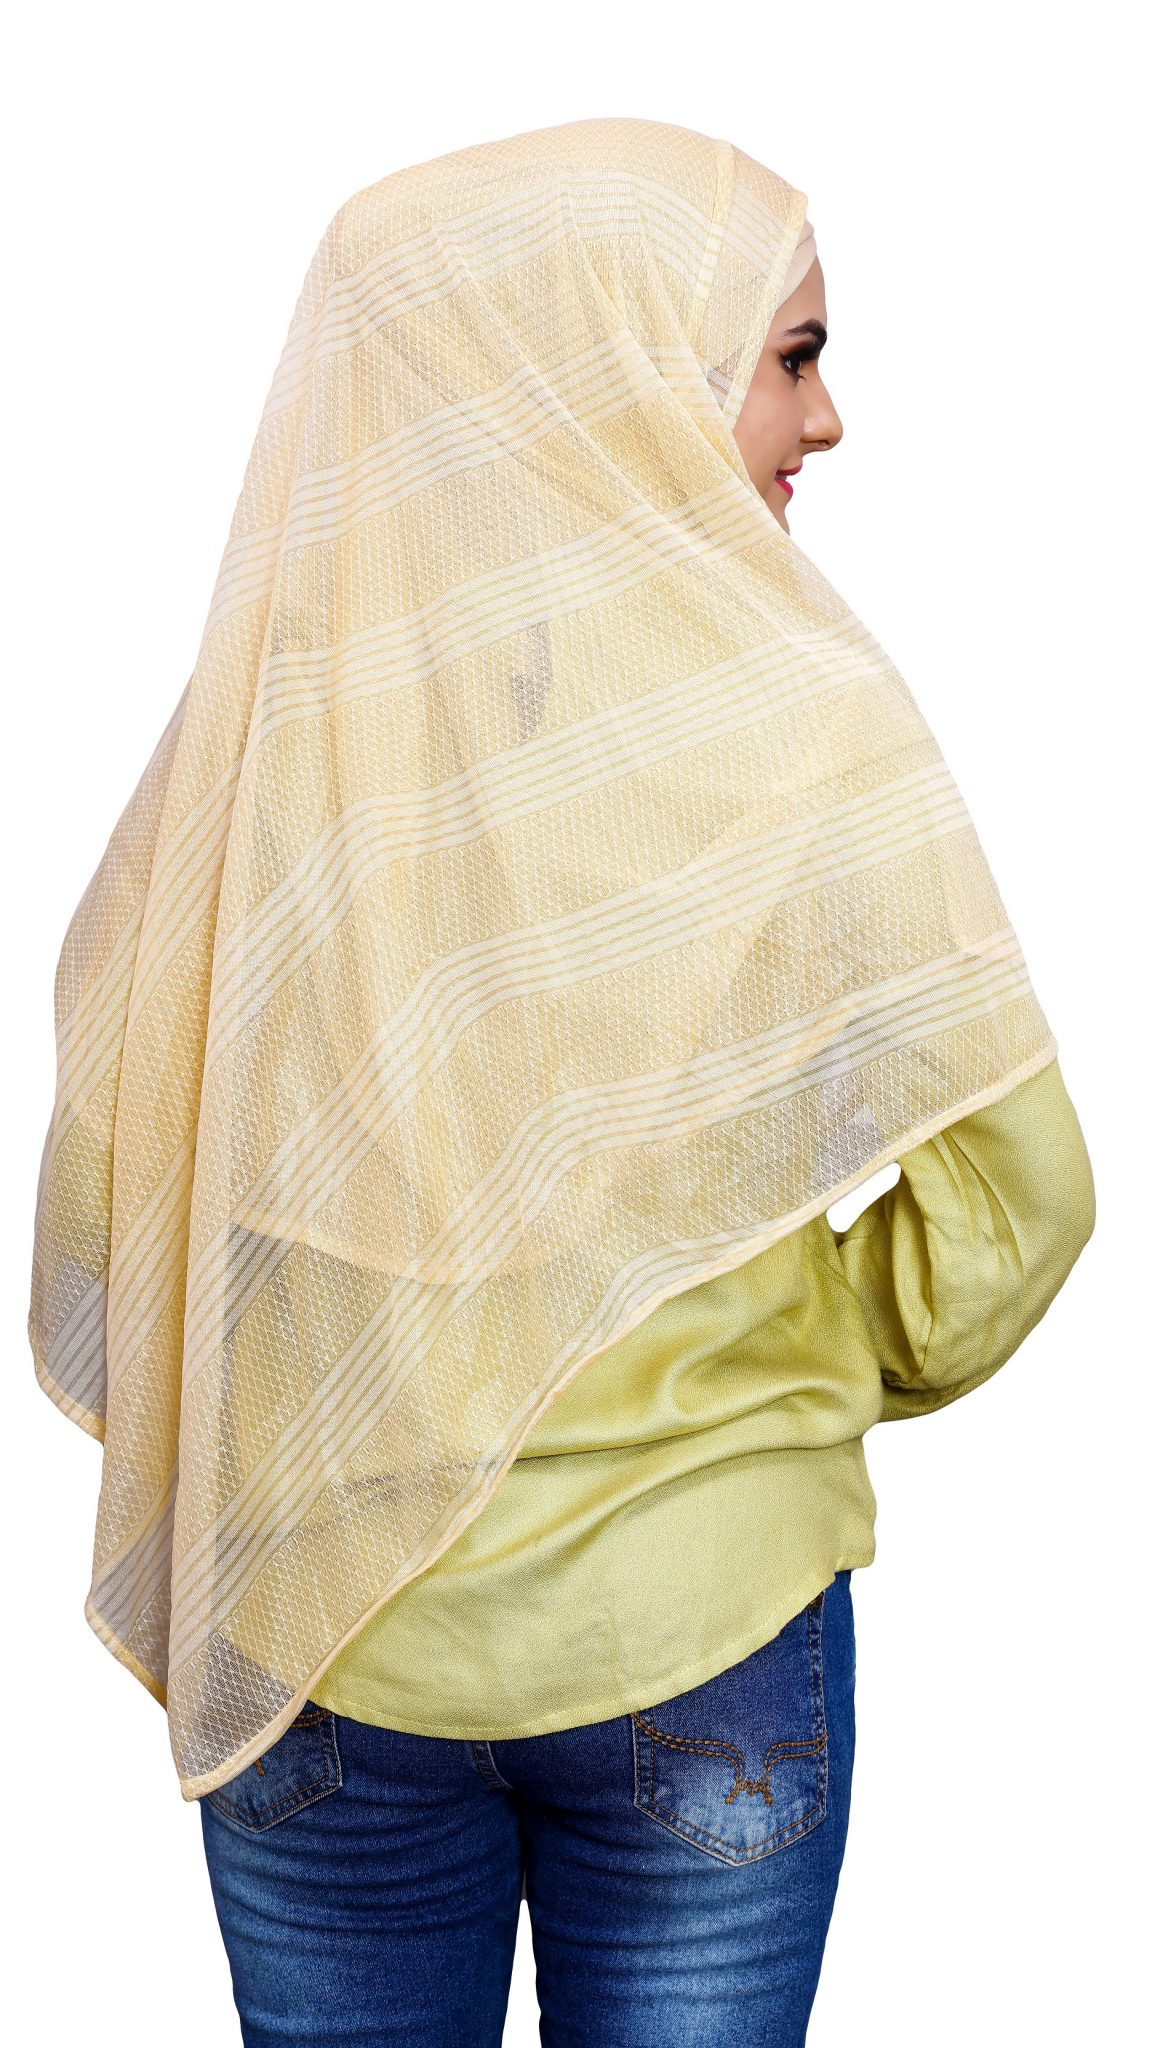 Plain Daily Wear Stitched 2 Loop Instant Hijab Scarf For